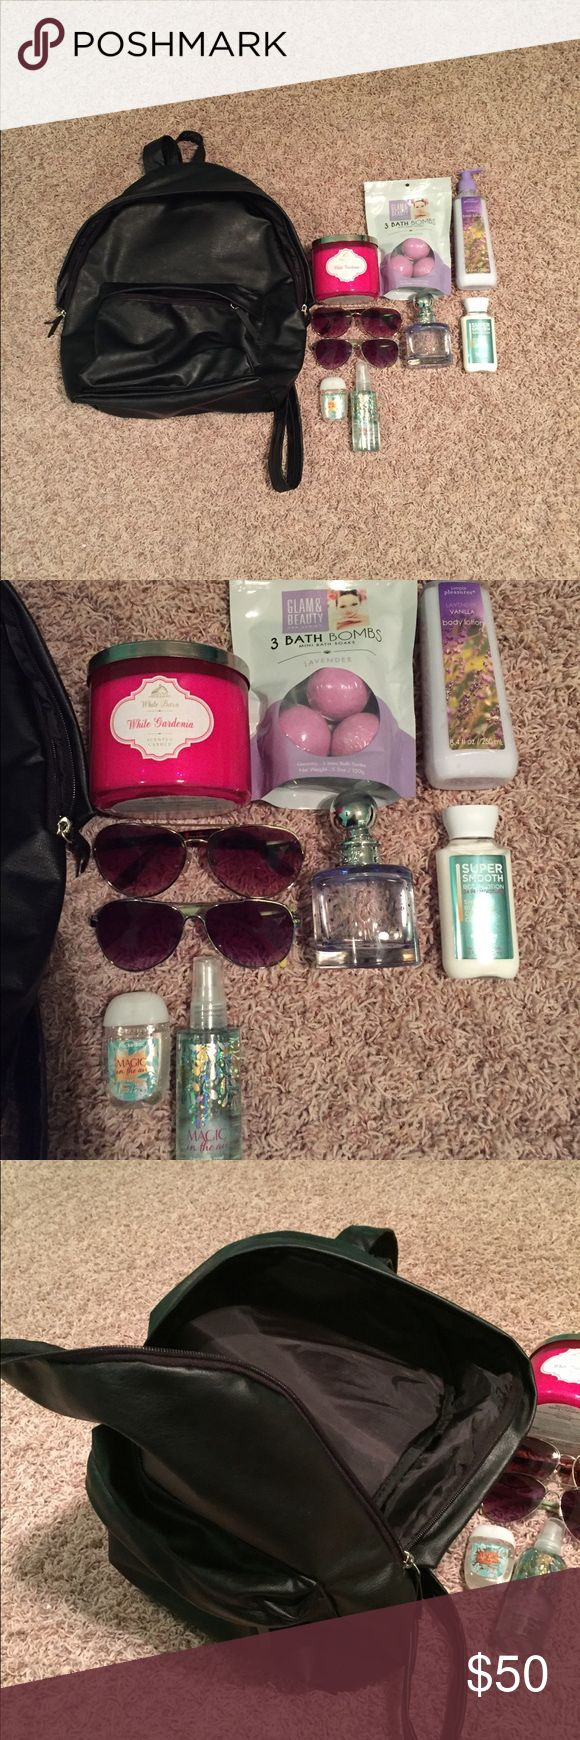 """ANOTHER BOOKBAG BUNDLE This bundle is a STEAL for the price! You pay $50 for 1 bath and body works candle, 1 """"magic in the air"""" travel size perfume from bath and body works WITH the matching hand sanitizer! You also get 2 pairs of sunglasses AND a Jessica Simpson perfume! The perfume does not have a box, but I will surely be wrapping everything up tightly to insure it doesn't break during shipment!! Hope you guys enjoy!! :) Other"""